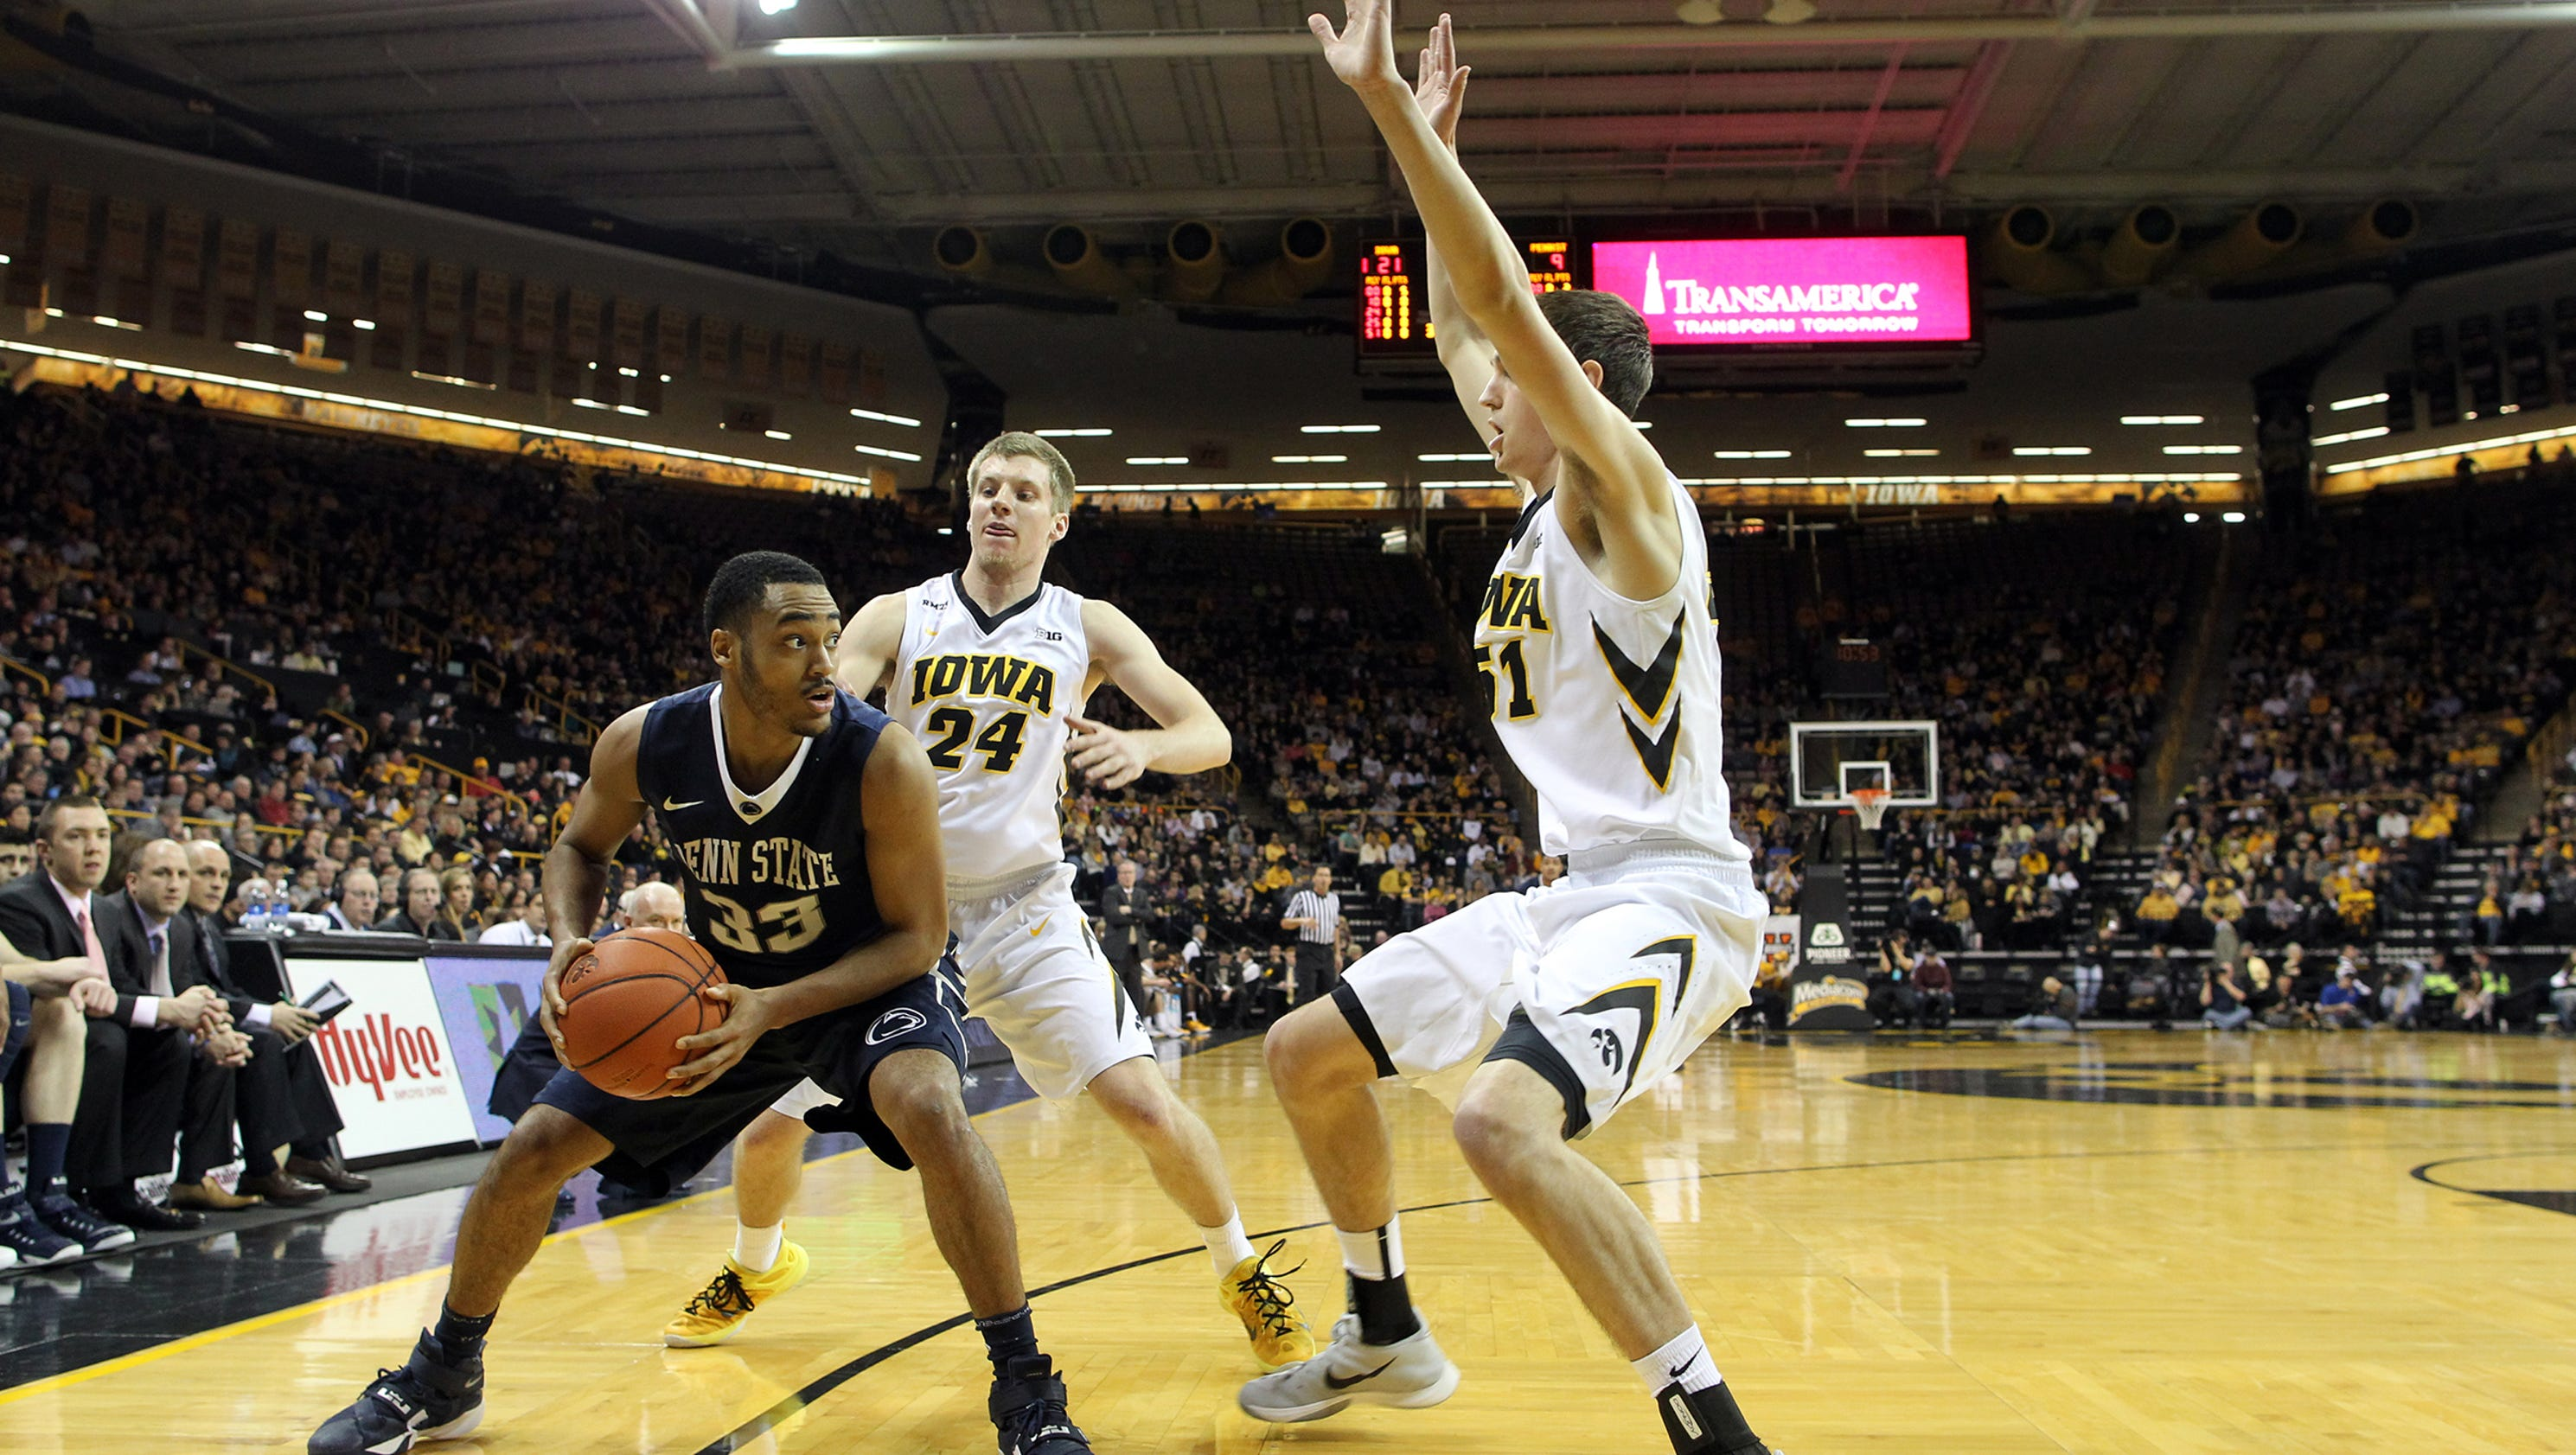 635901305180791961-iow-0203-iowa-mbb-vs-psu-14